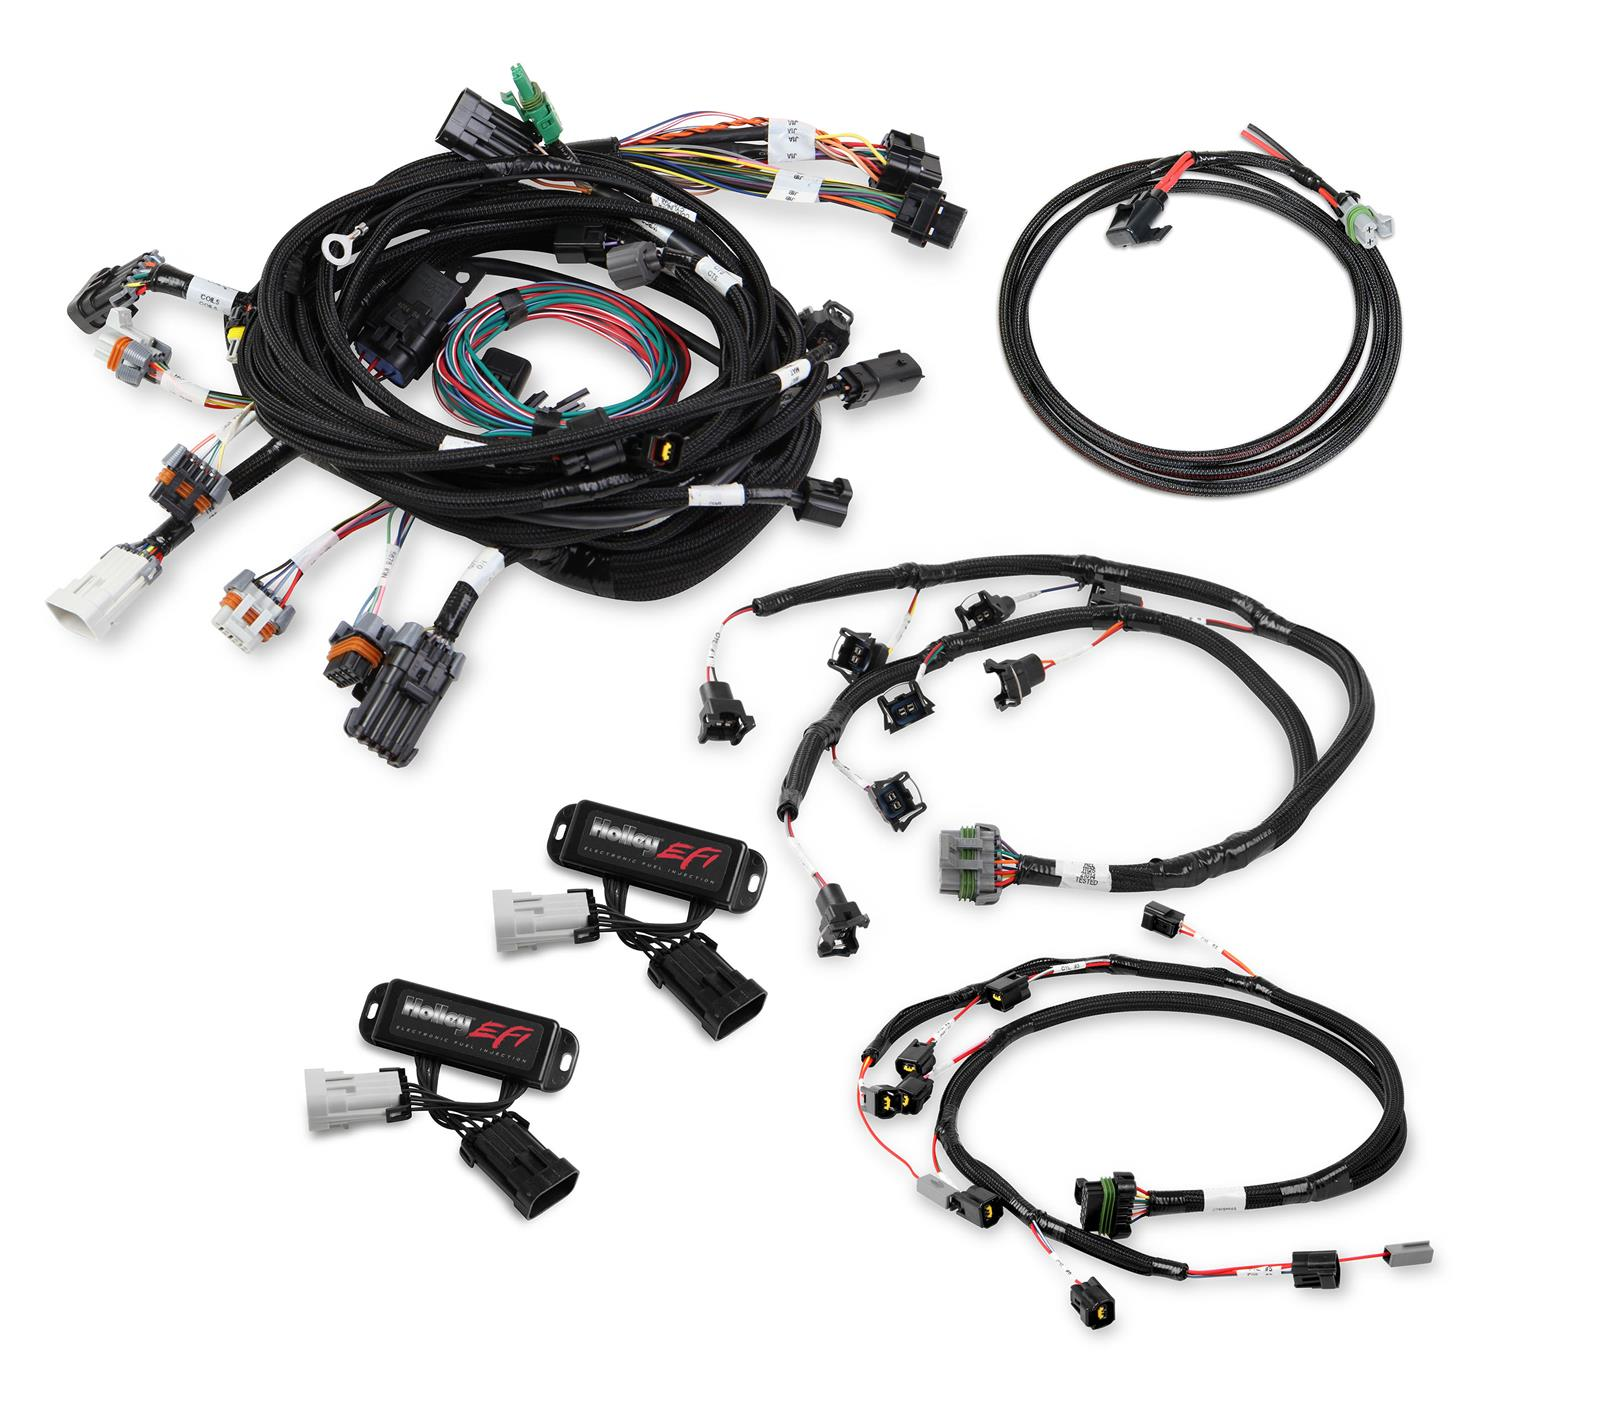 holley efi systems wiring harnesses 558-505